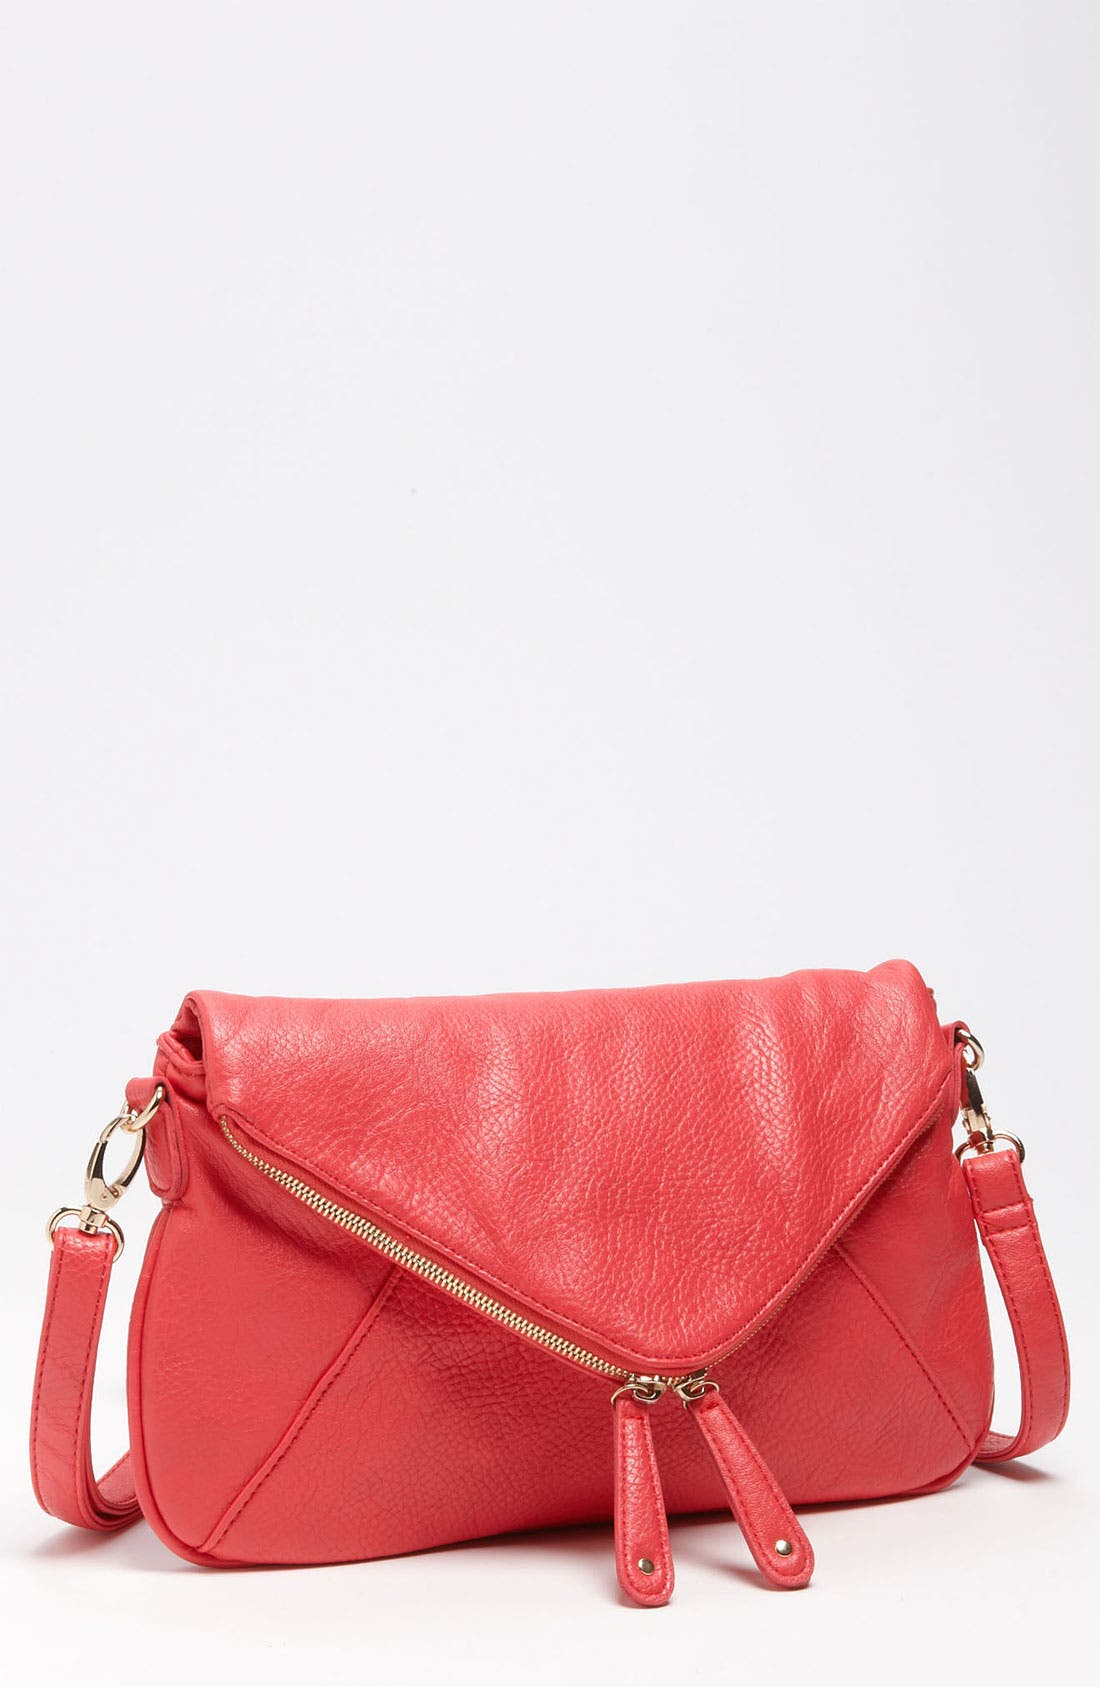 Main Image - Street Level Convertible Crossbody Envelope Bag